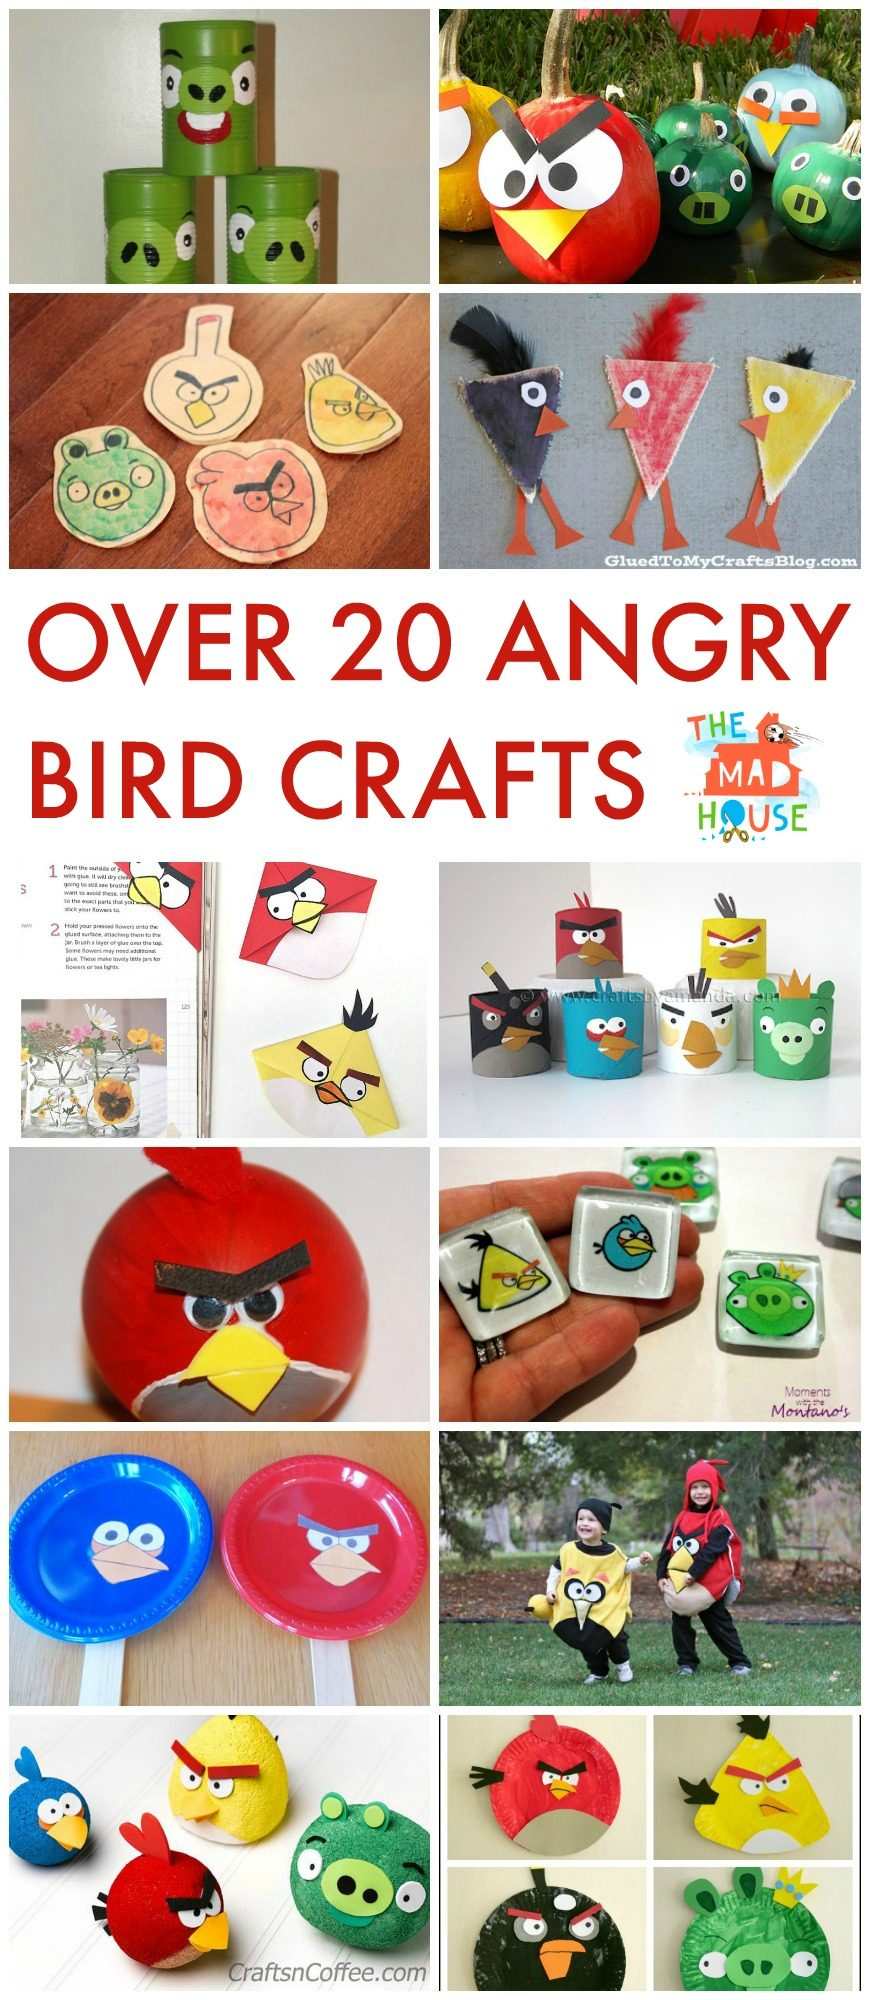 Over 20 Angry Birds Crafts and Activities for Kids.  Children will adore this selection of Angry Bird Activities and crafts.